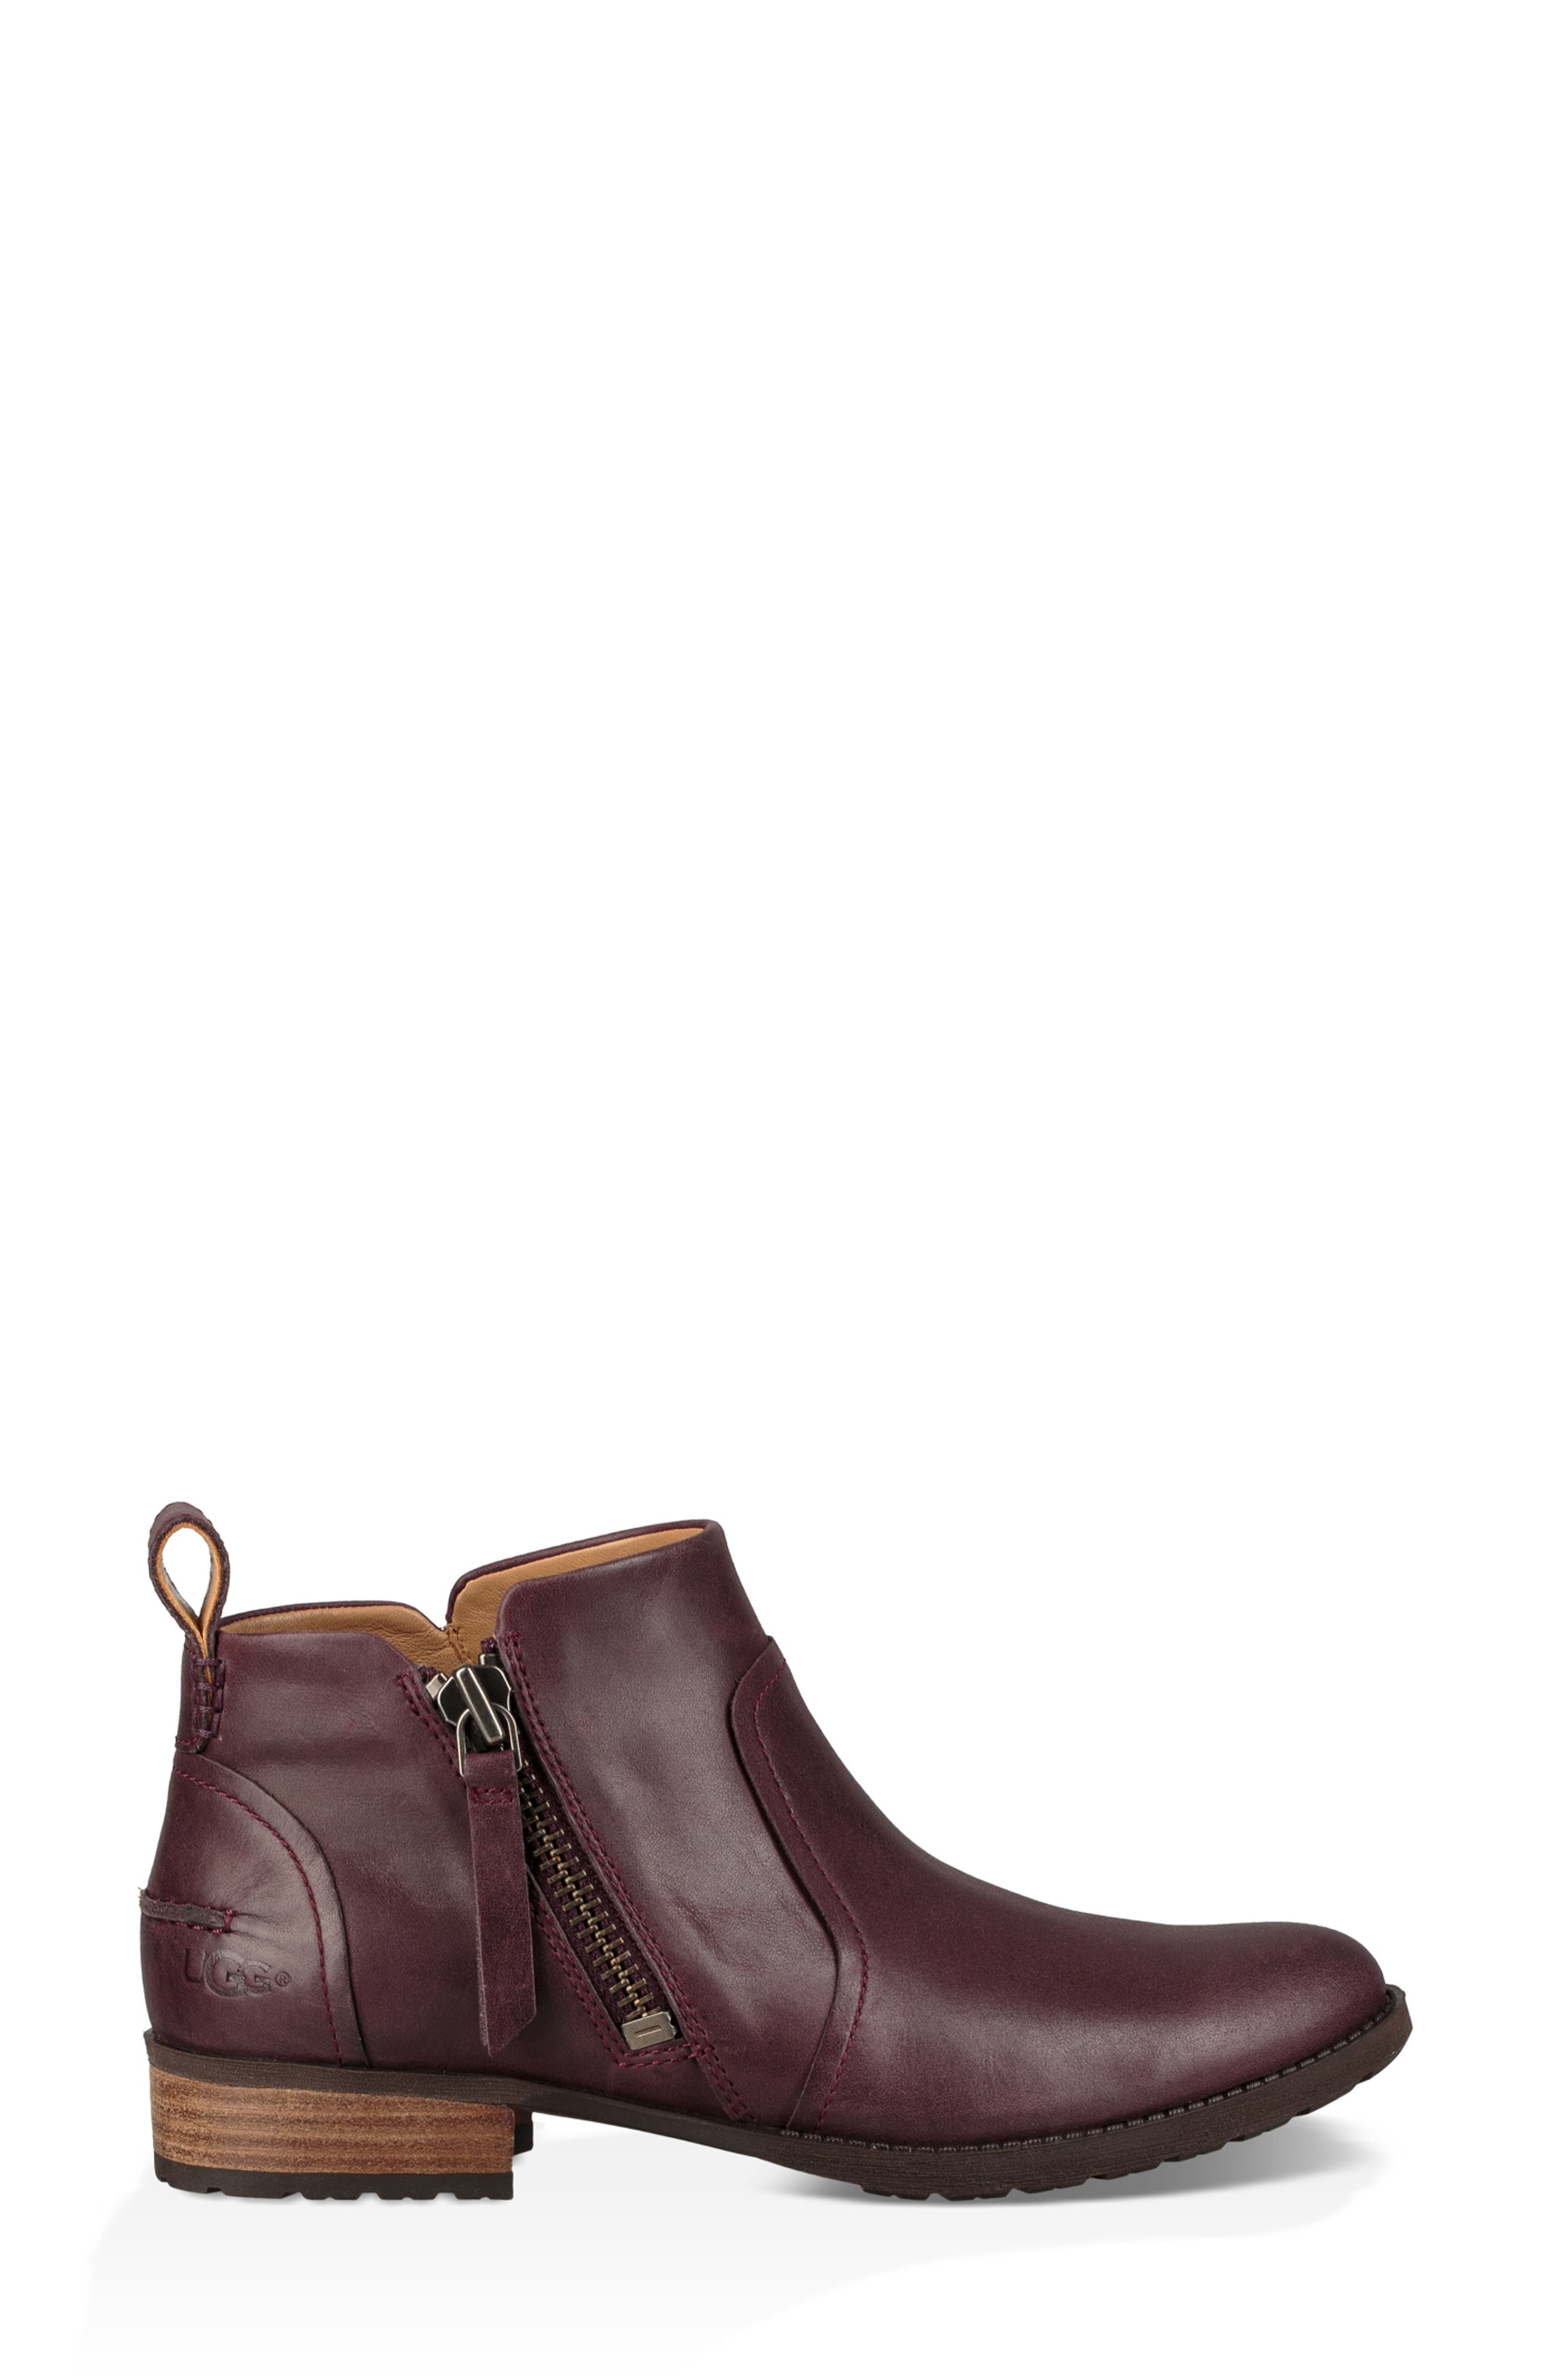 Aureo Bootie,                             Alternate thumbnail 3, color,                             OXBLOOD LEATHER